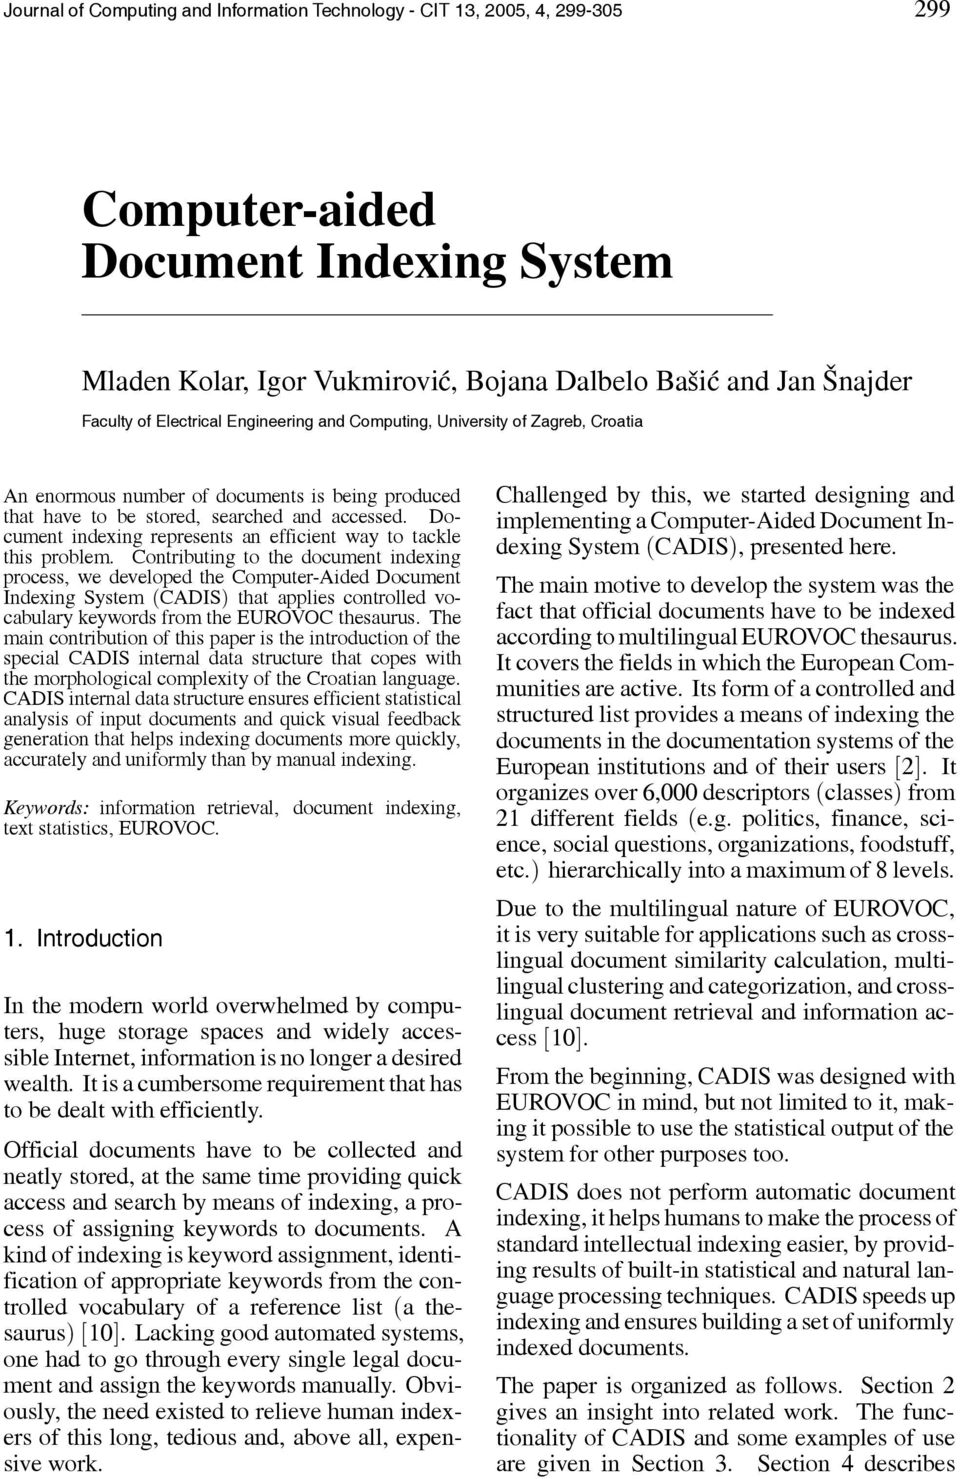 Contributing to the document indexing process, we developed the Computer-Aided Document Indexing System (CADIS) that applies controlled vocabulary keywords from the EUROVOC thesaurus.